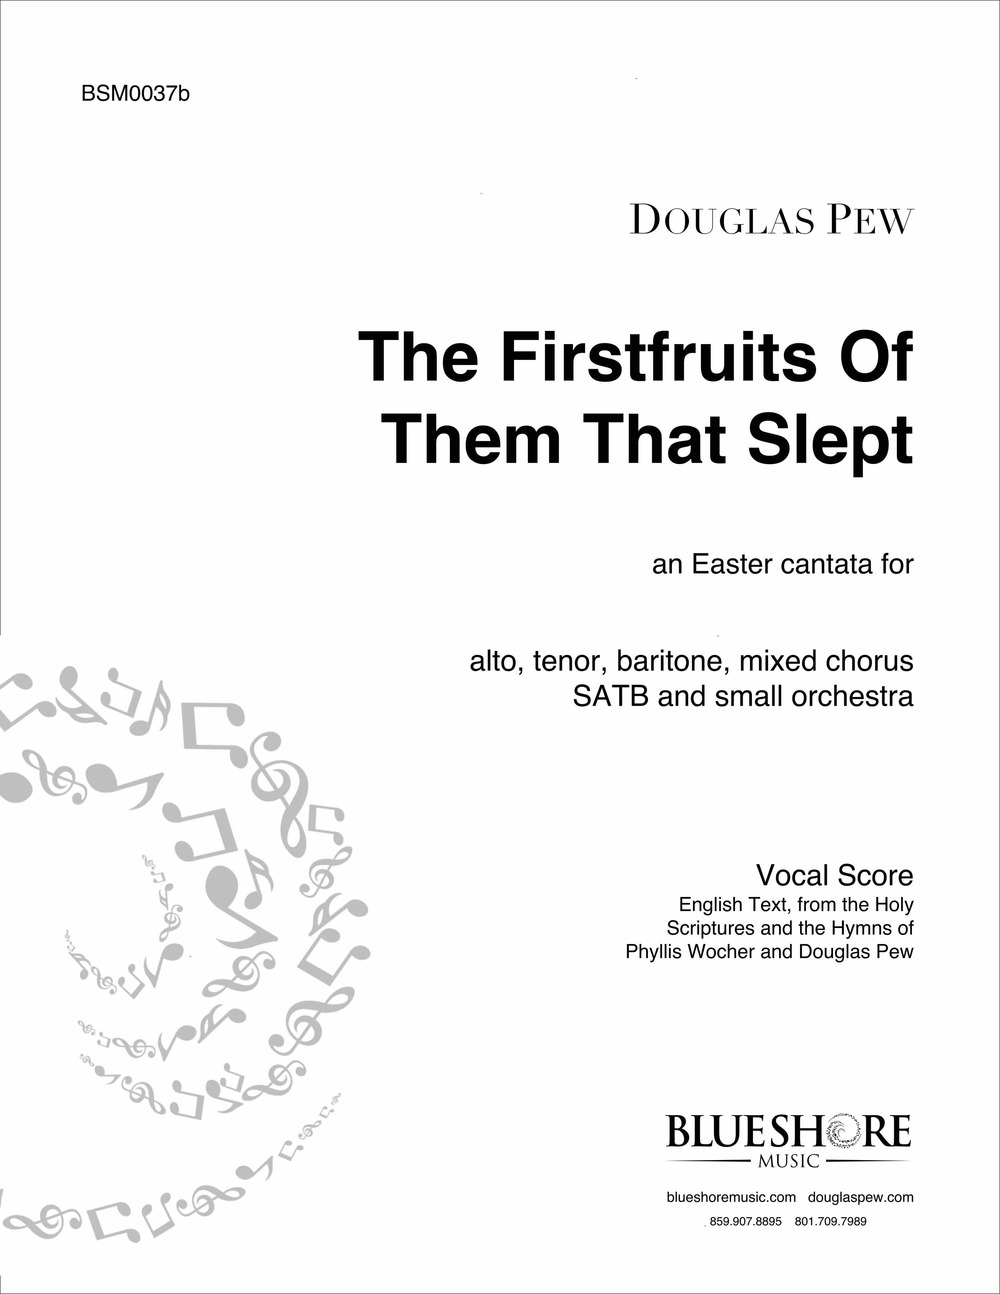 The Firstfruits of Them that Slept, Easter Cantata for Soloists, Chorus, and Chamber Orchestra